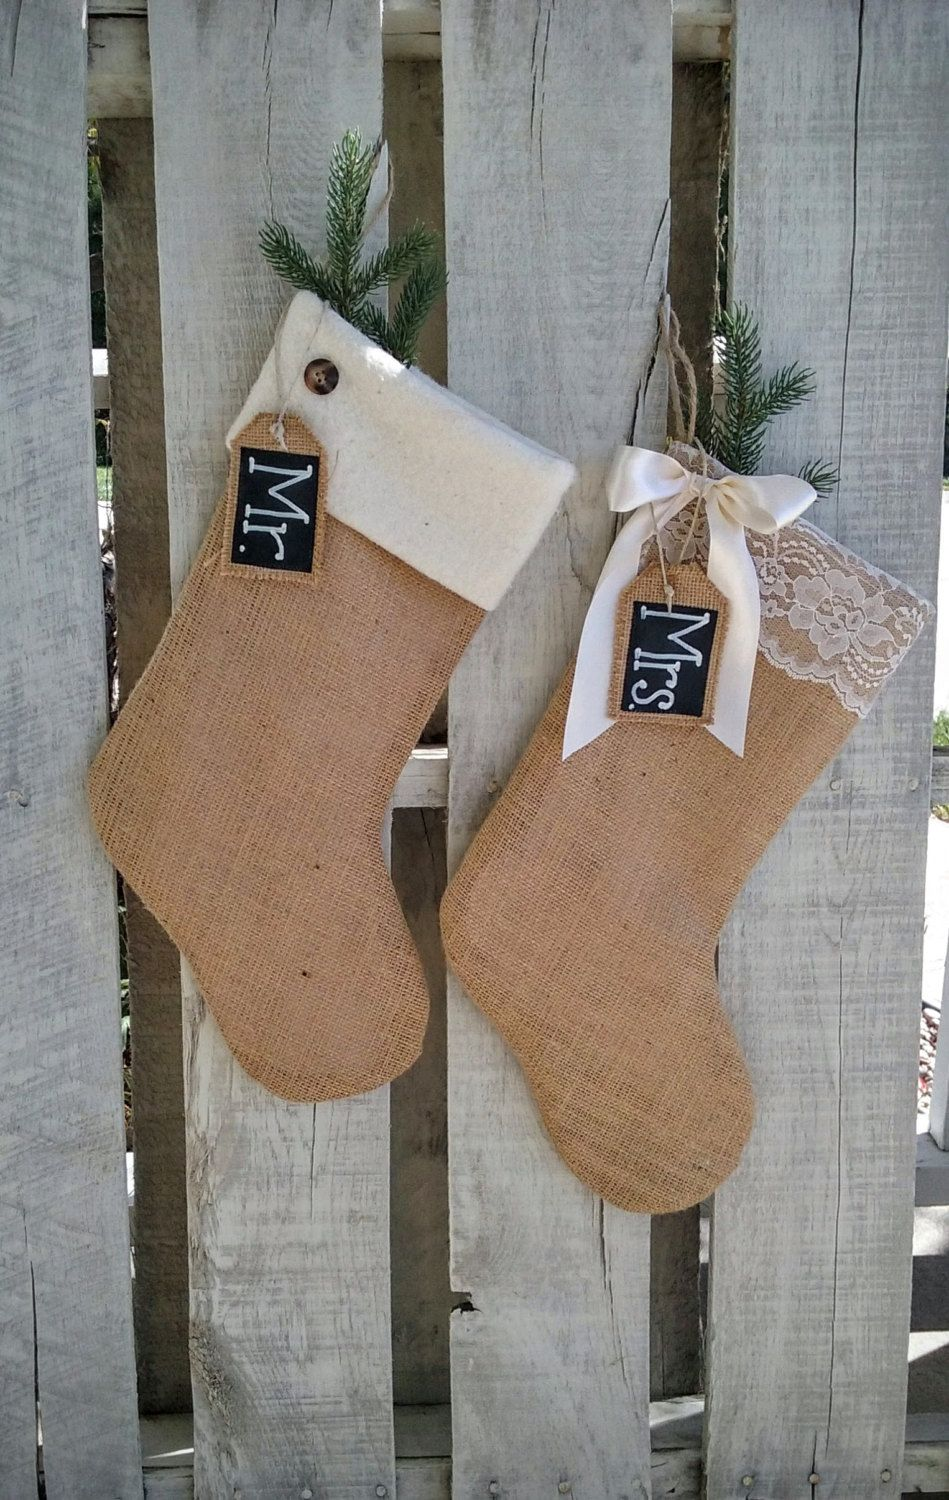 Mr and mrs burlap stocking set christmas stockings rustic christmas stockings christmas wedding gift holiday couple gift by prairieburlapliving on